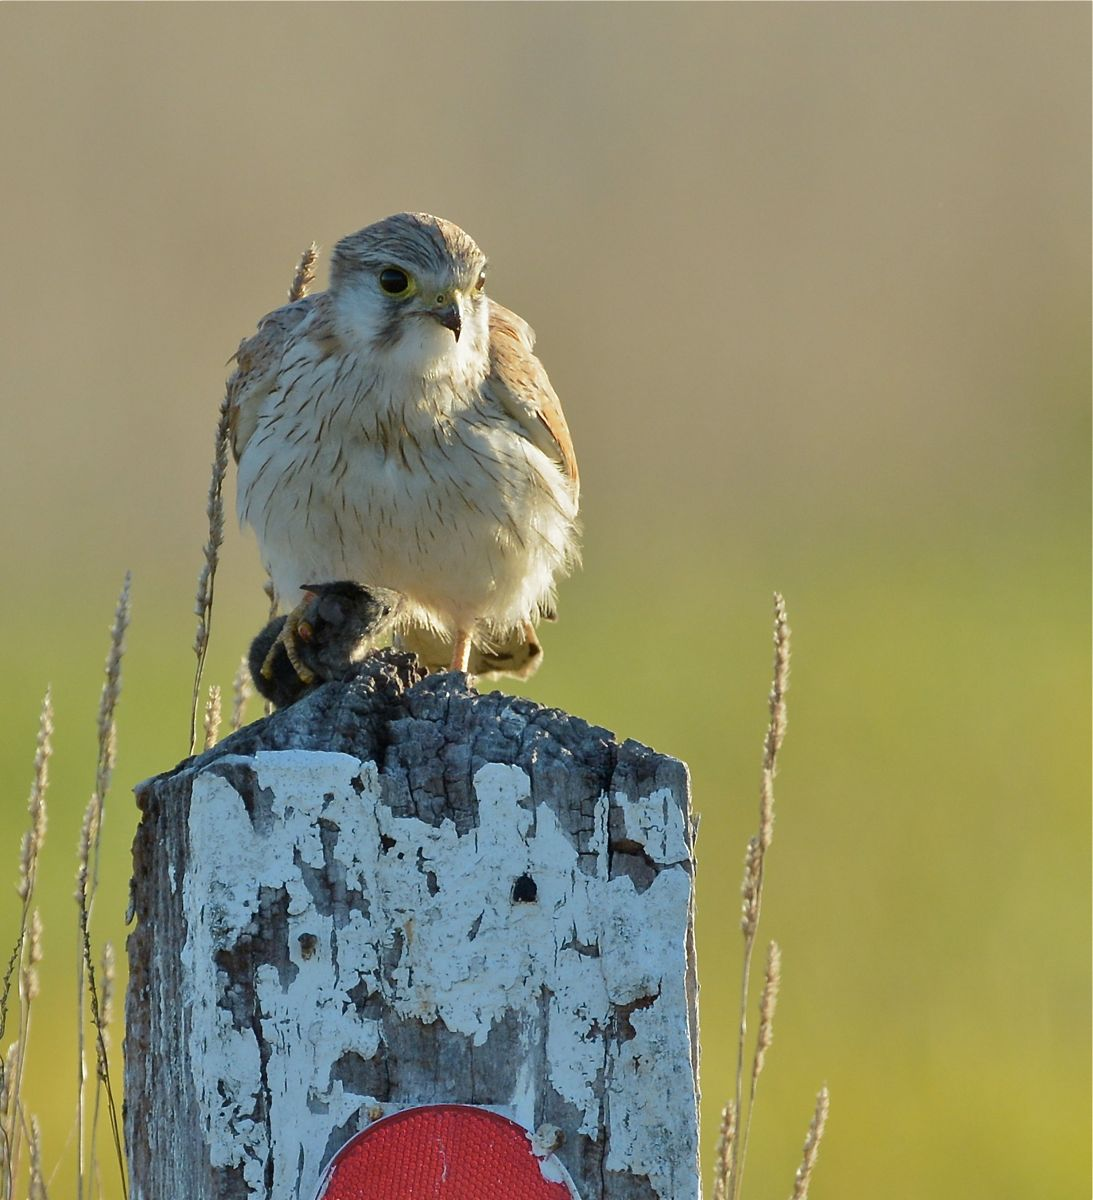 Nankeen Kestrel, just about to enjoy her evening snack. She is already aware of the approaching marauding Black Falcon